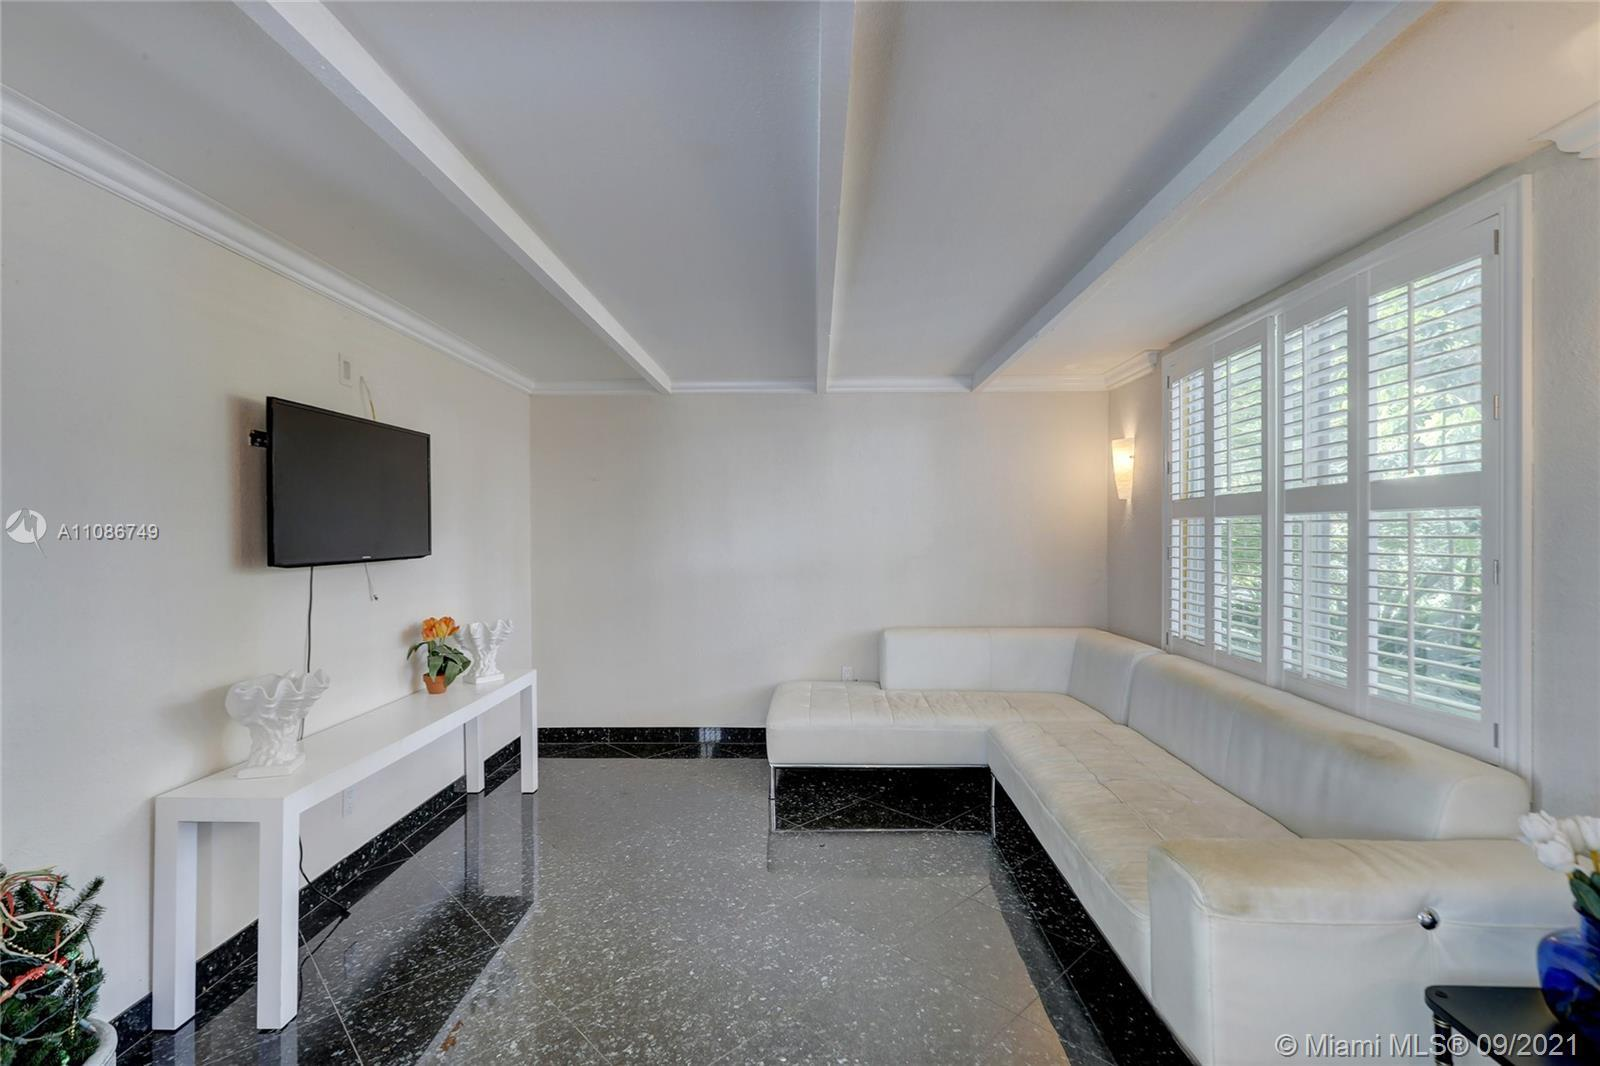 Large corner Mid Century Modern home in Wilton Manors! Freshly painted living areas, updated kitchen